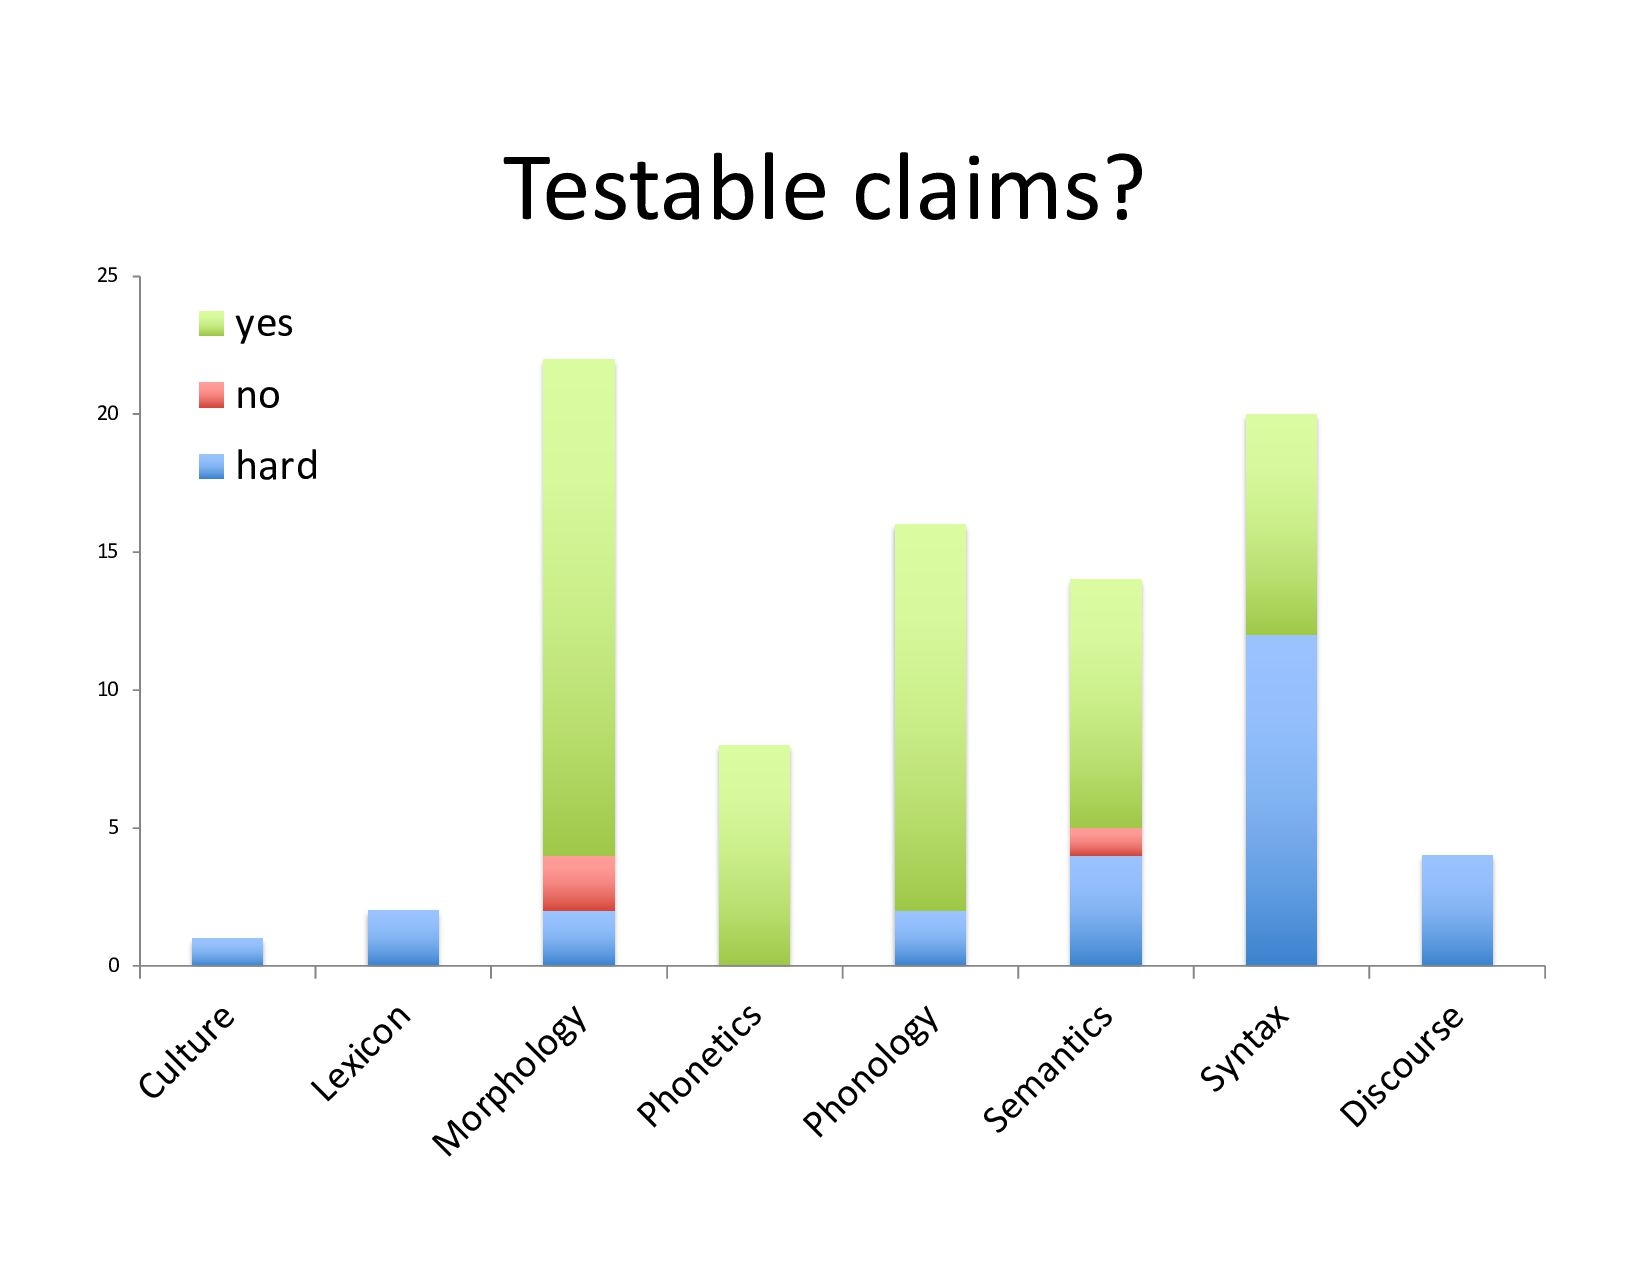 Are the claims true?